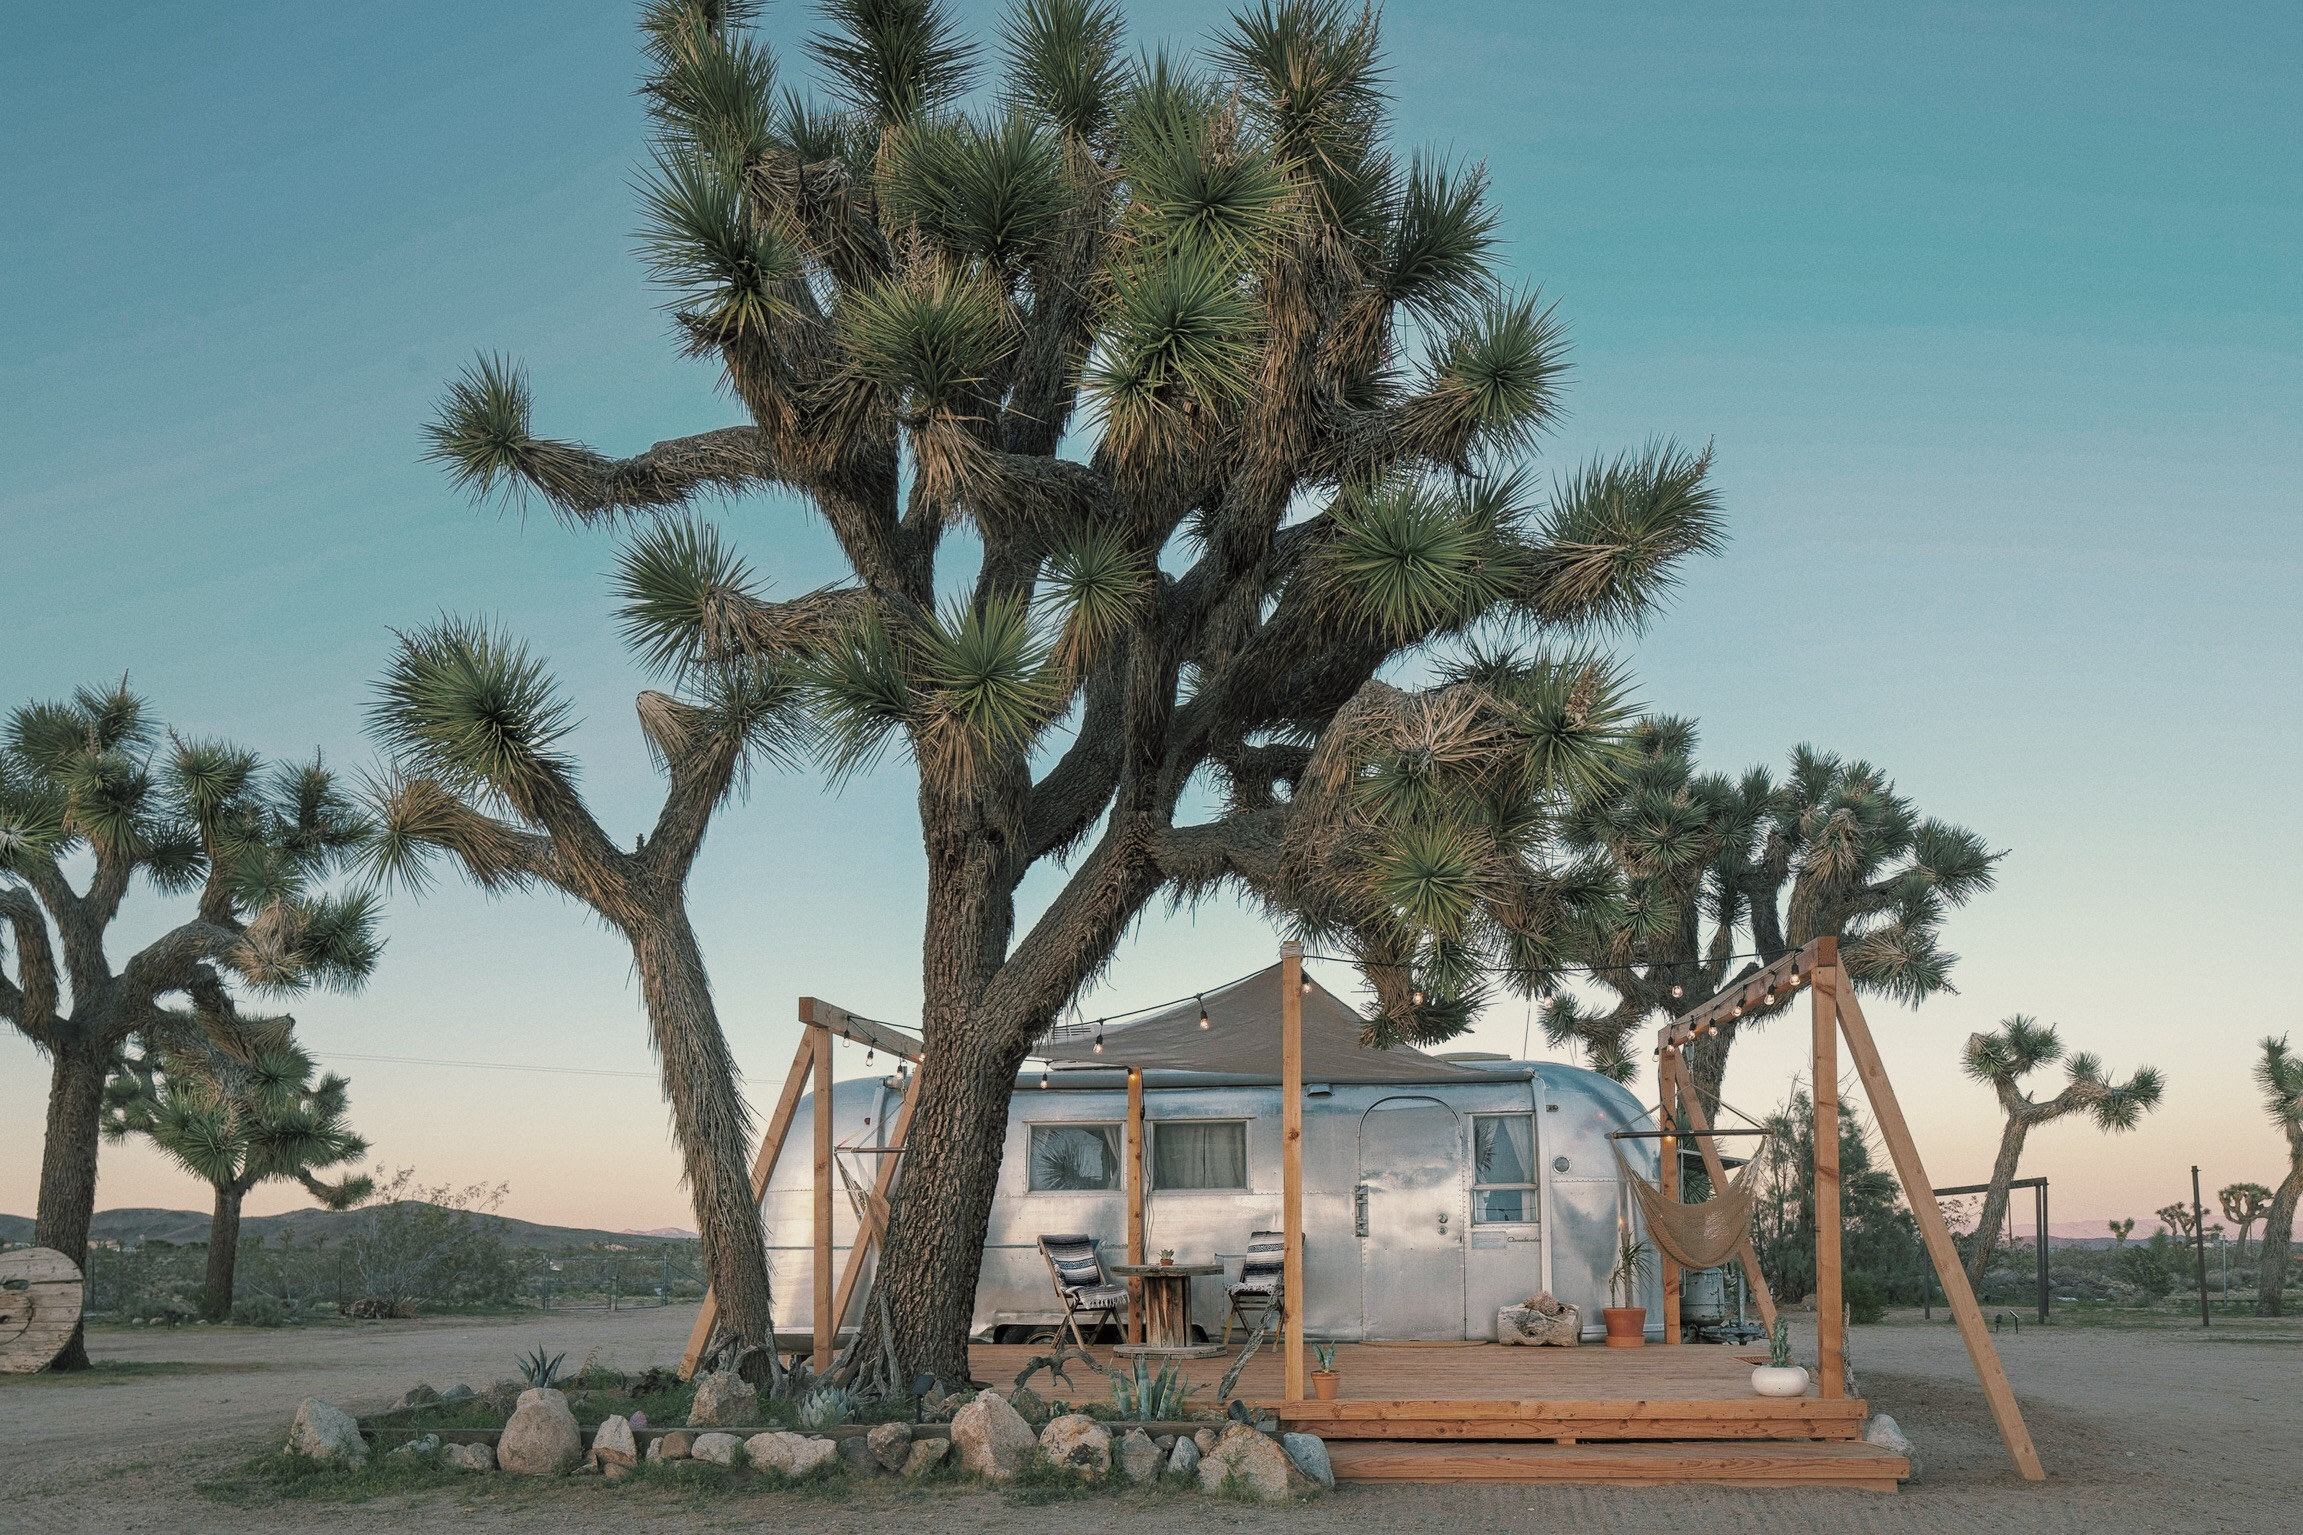 sound of silence 1964 - Our 1964 vintage Airstream will transport you back to another era when the Beatles were stars and cell phones were sci-fi dreams. Open skies, mountain views and moon gazing awaits you on this peaceful 10 acres of desert land.Casper Full - Sleeps 2BOOK HERE